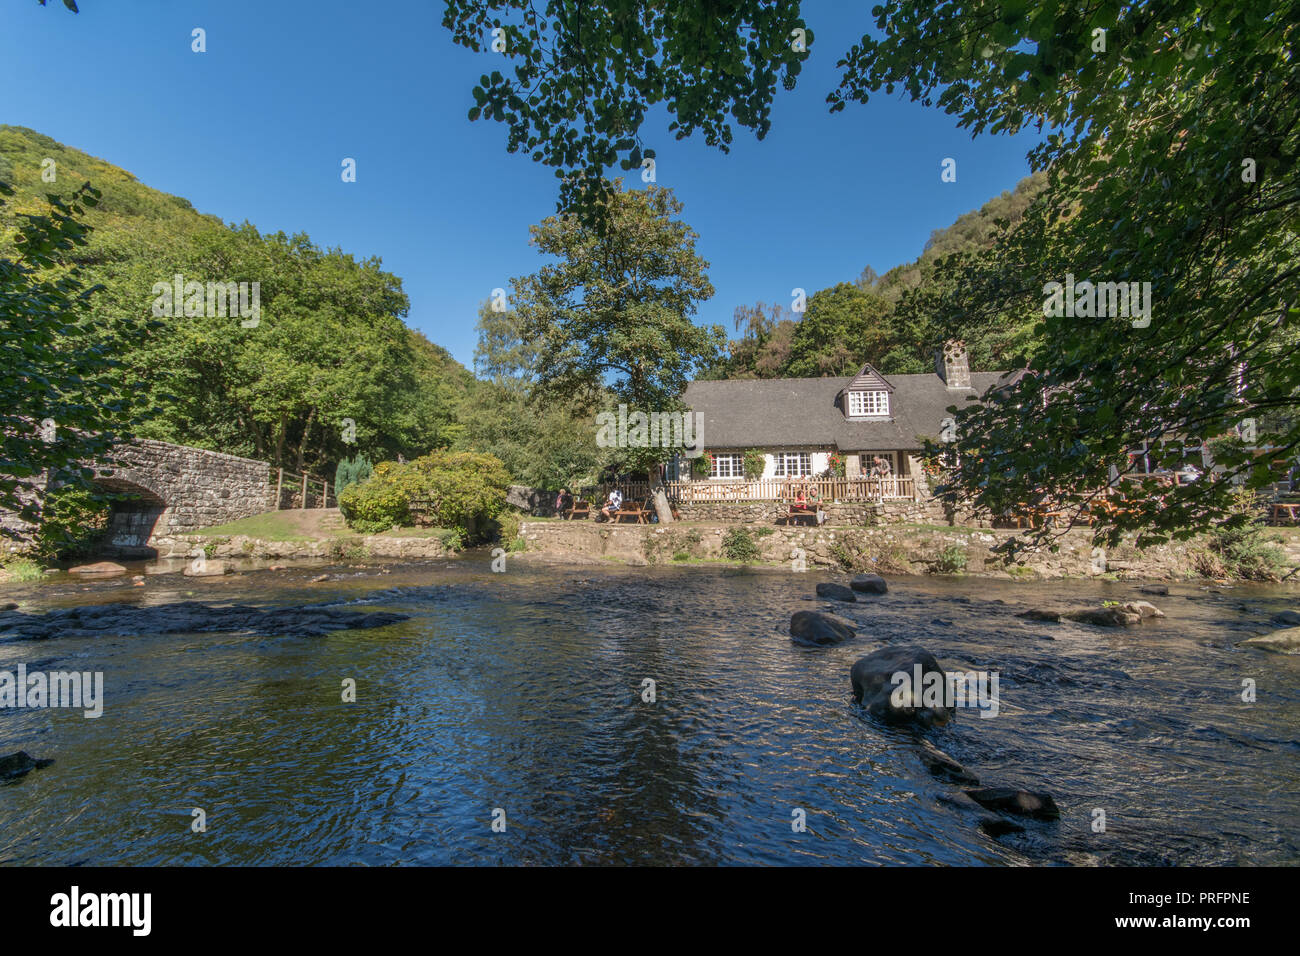 Fingle Bridge Inn next to the river Teign in Dartmoor with people outside eating and drinking - Stock Image